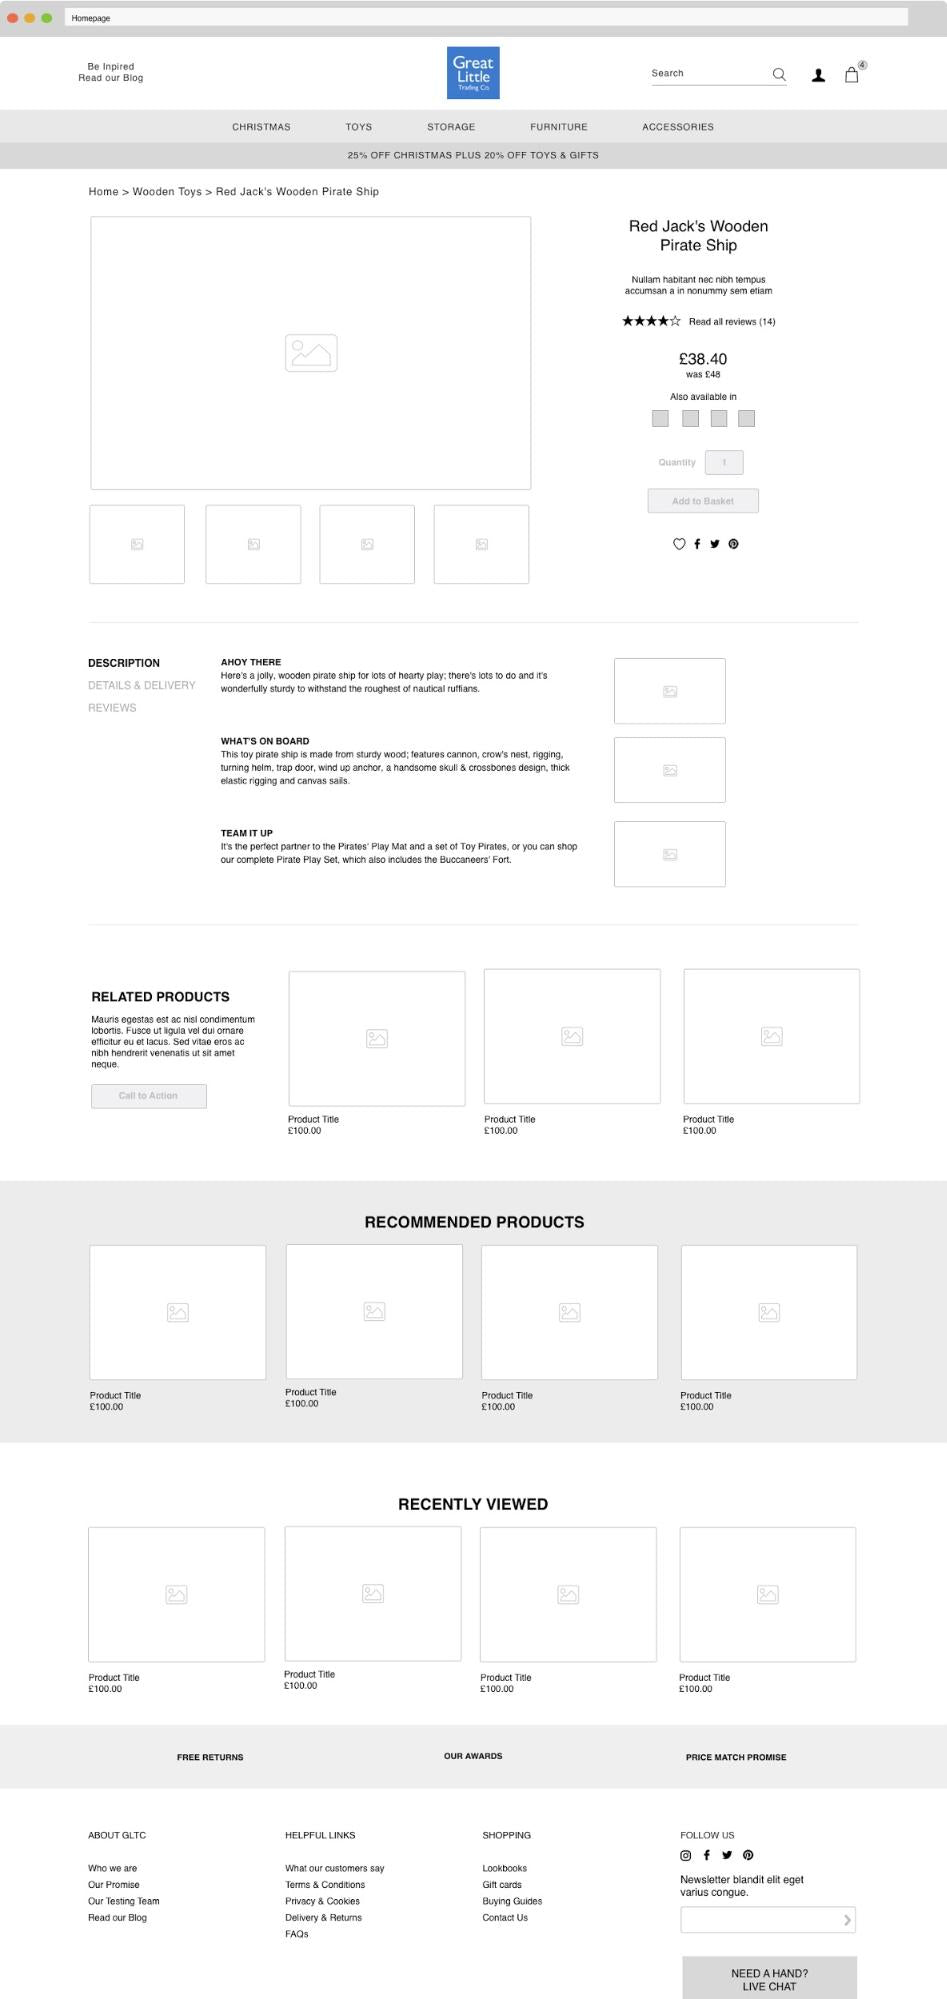 GLTC's wireframe for migrating ecommerce platforms